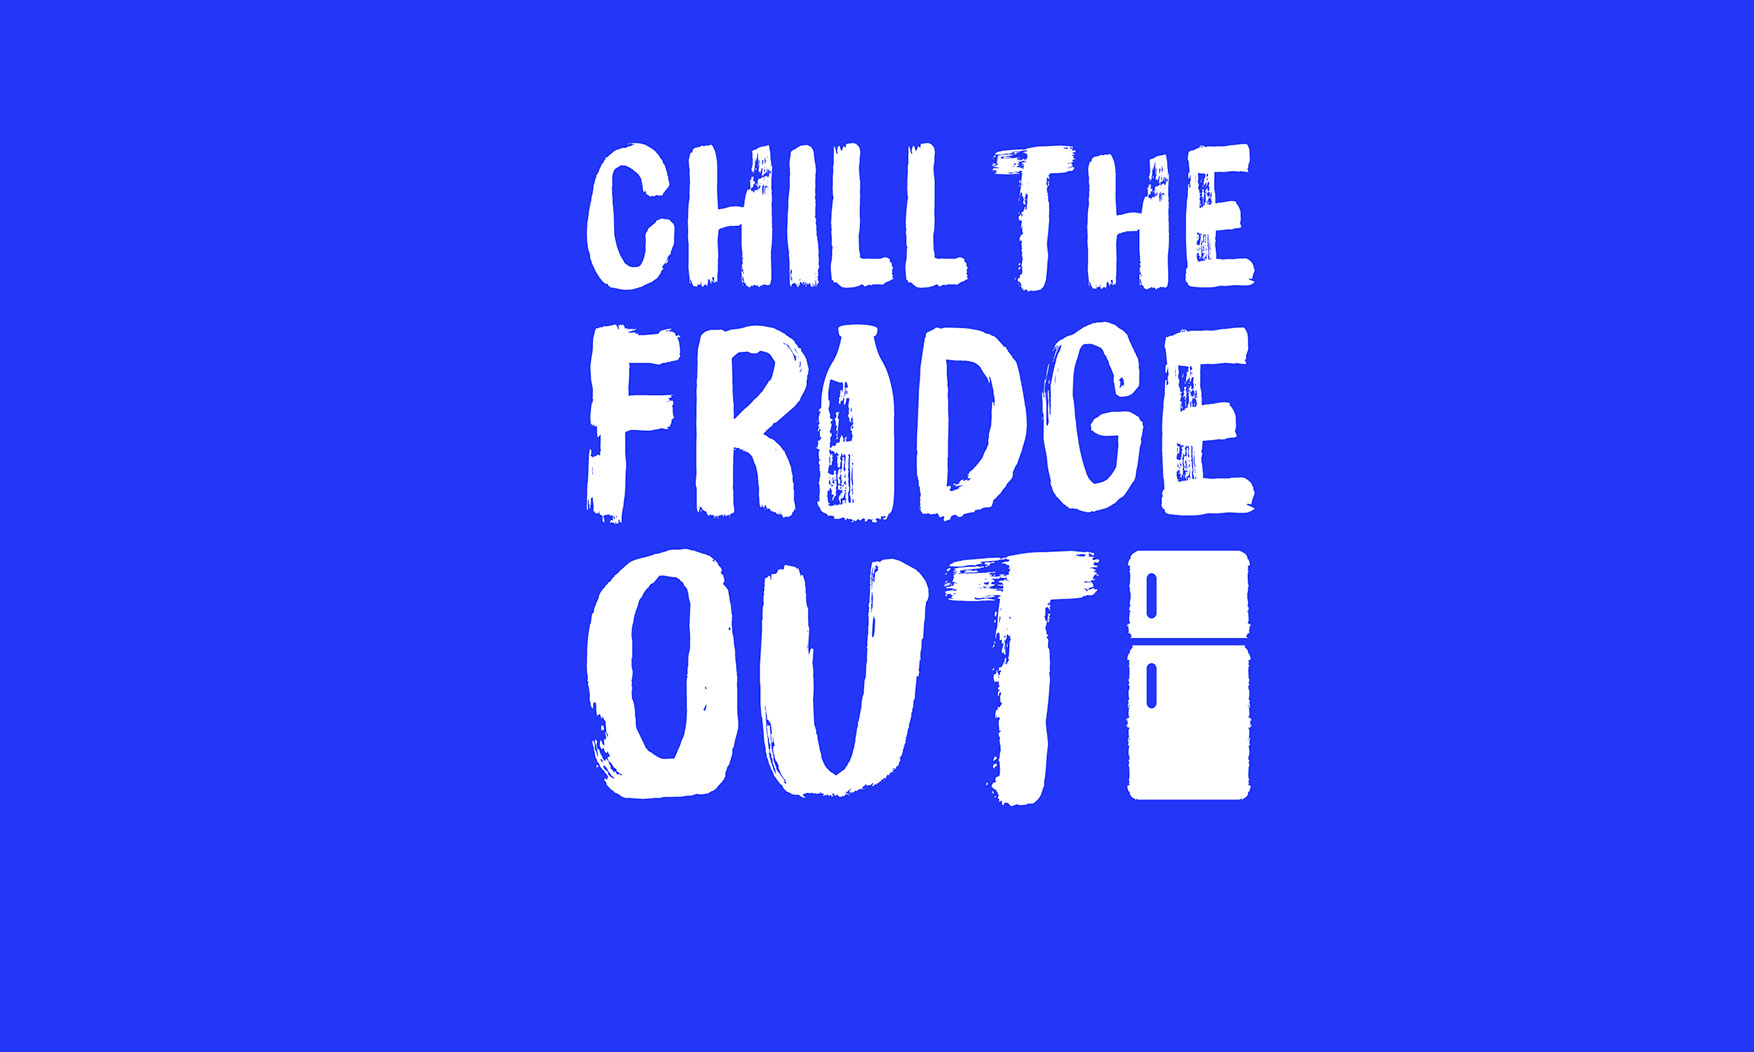 Chill the Fridge out this World Food Day, and curb food waste in Scotland